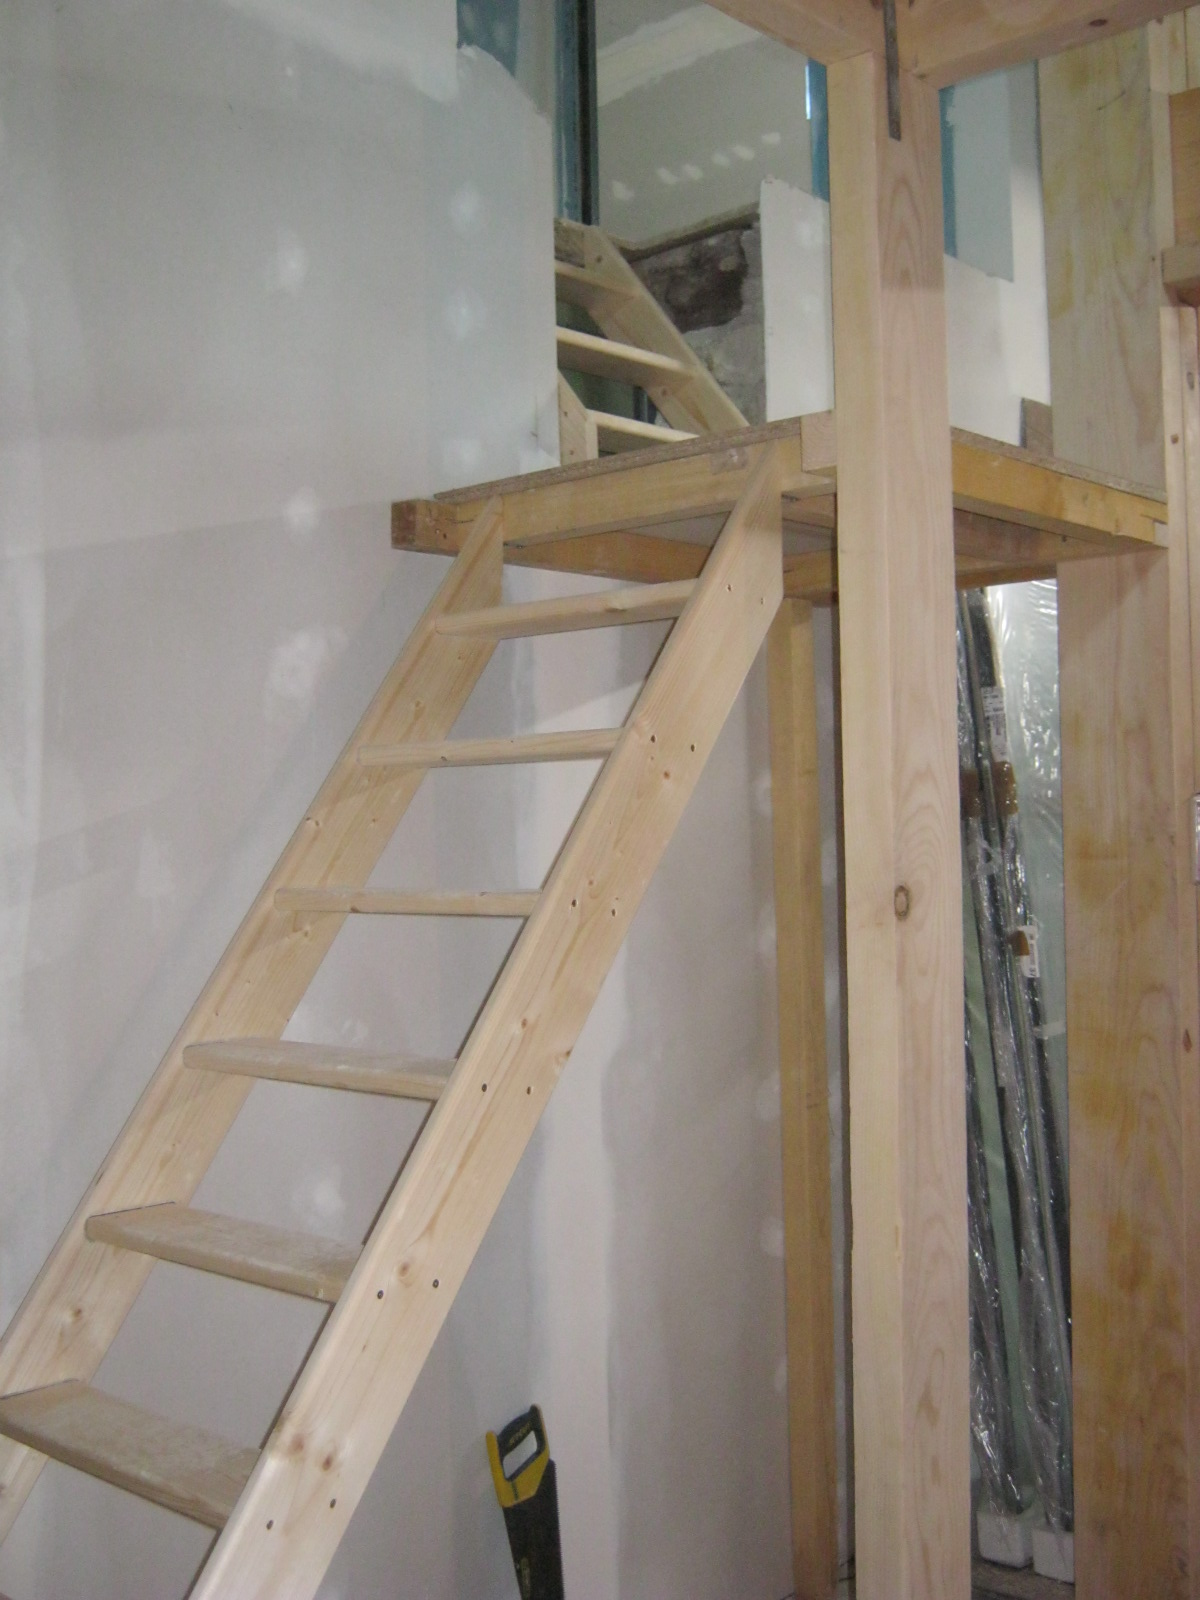 construction de notre escalier en bois et m tal tout plein de trucs. Black Bedroom Furniture Sets. Home Design Ideas